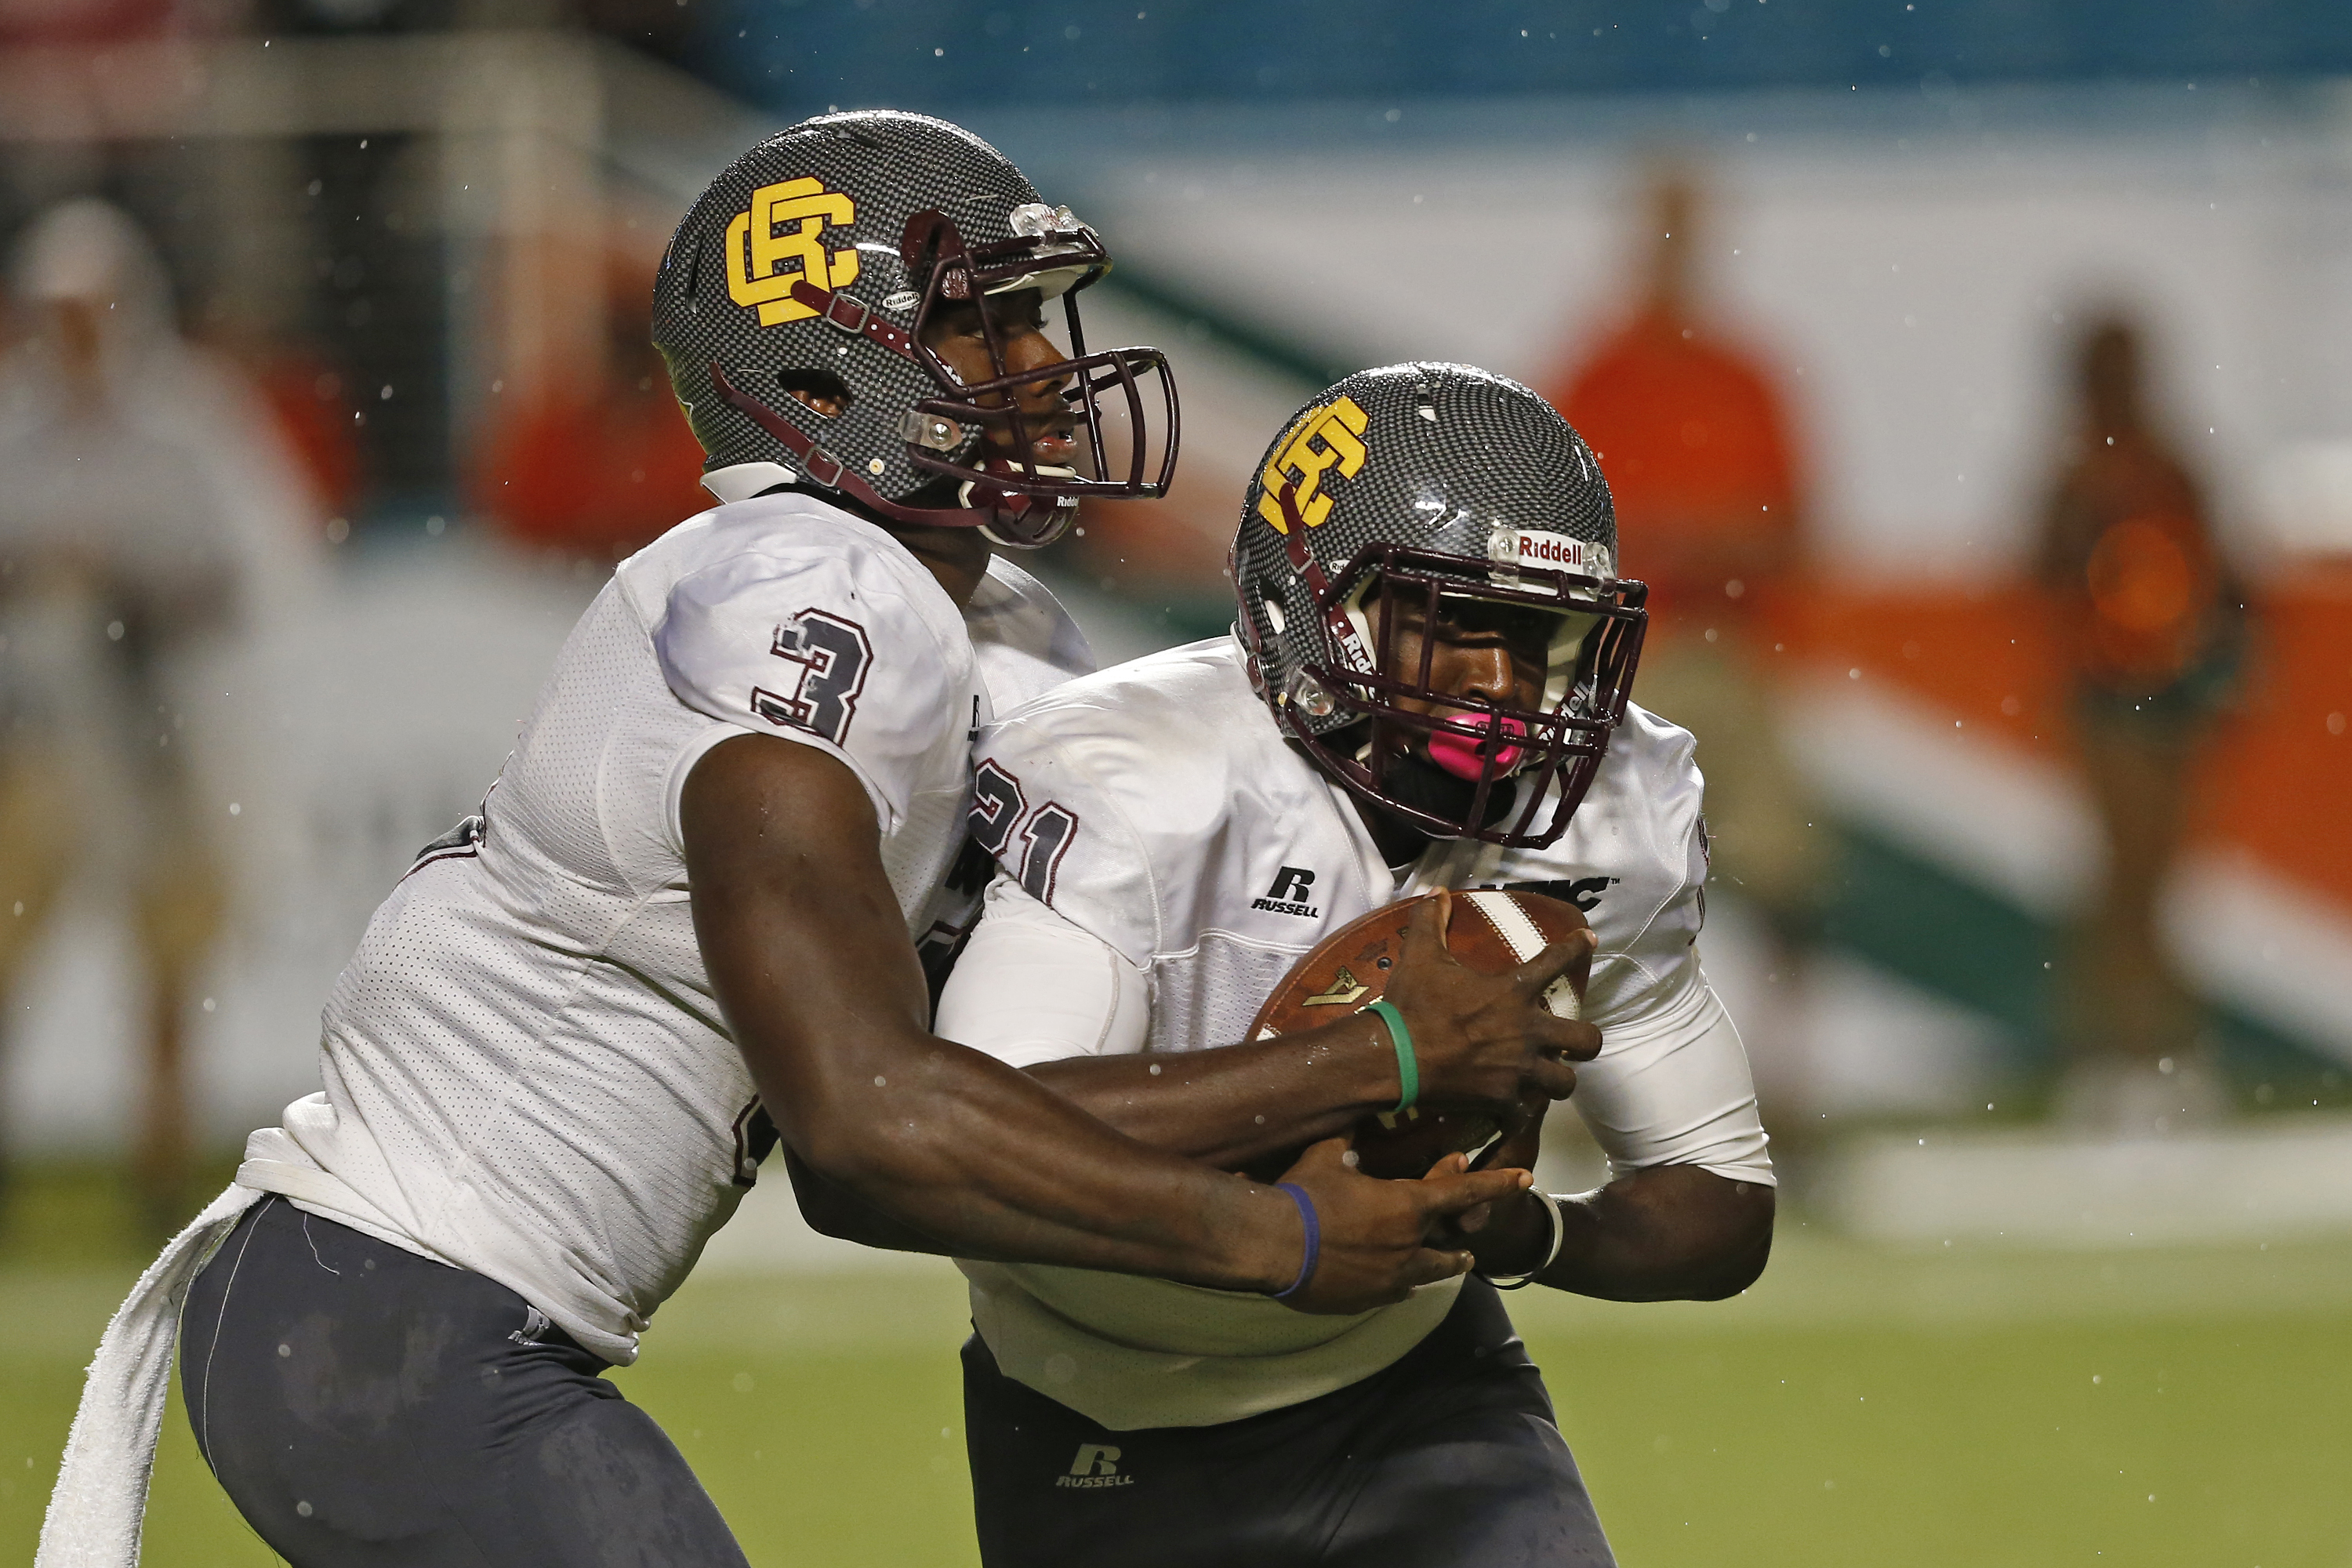 Quentin Williams #3 hands the ball off to Michael Jones #21 of the Bethune-Cookman Wildcats during second quarter action against the Miami Hurricanes on September 5, 2015 at Sun Life Stadium in Miami Gardens, Florida.